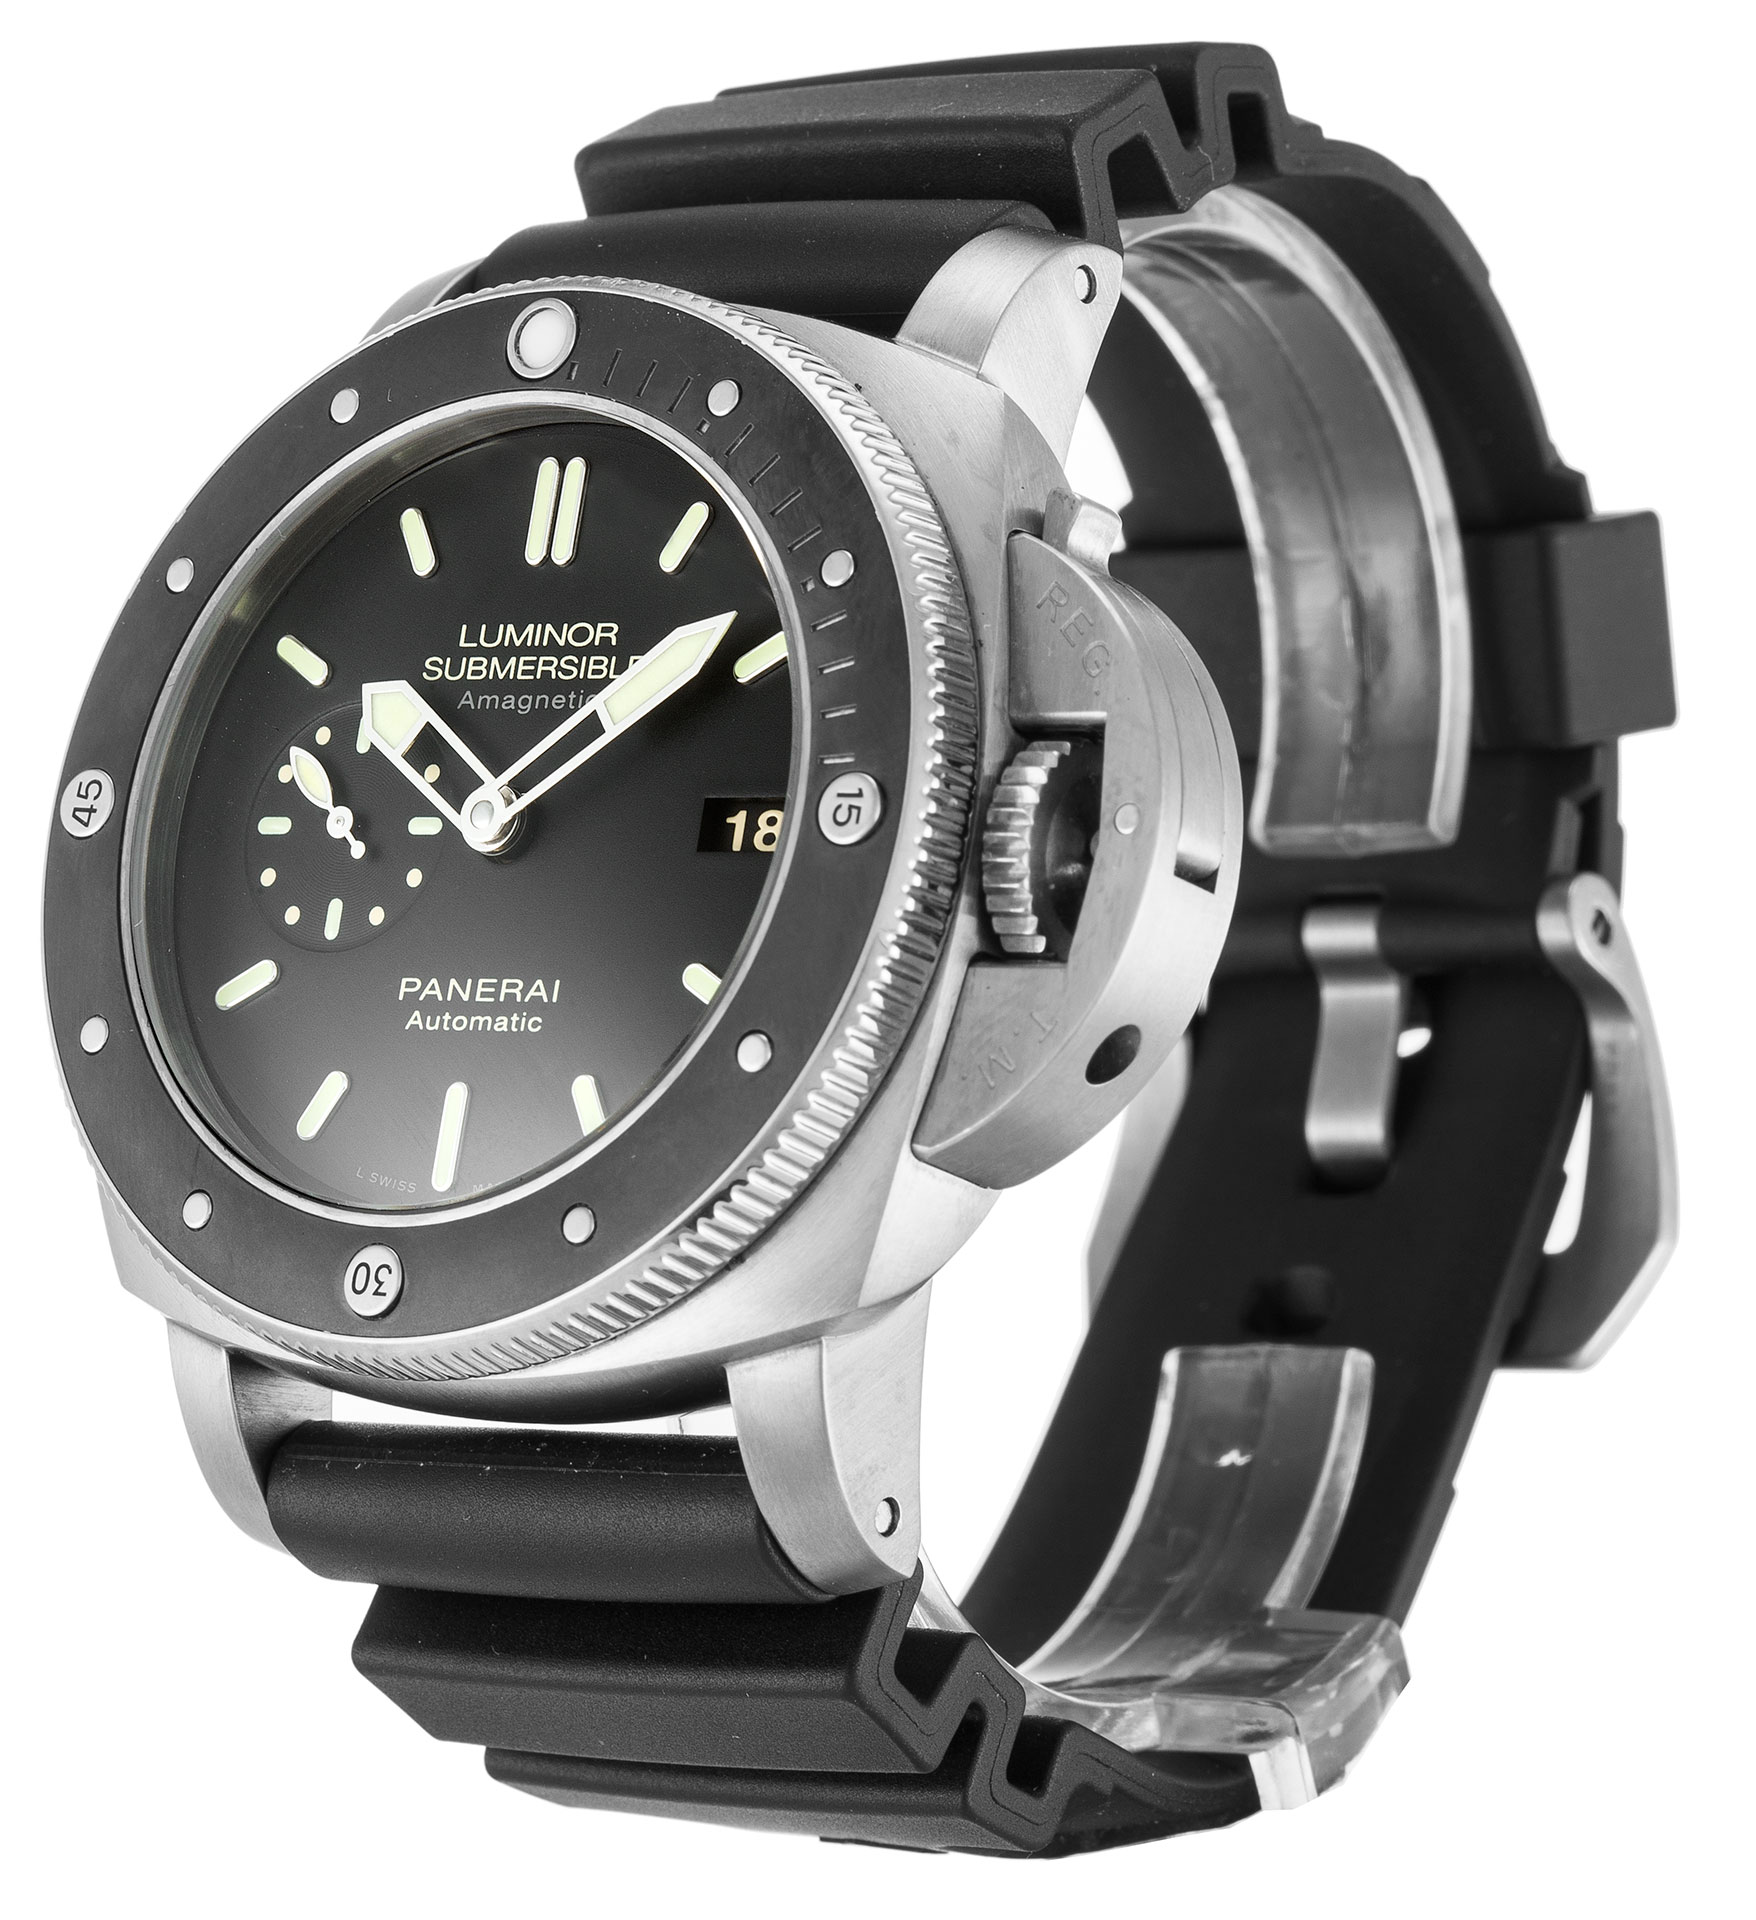 best big offers pricing rock price brands june original deals in decode wrist black lowest watches